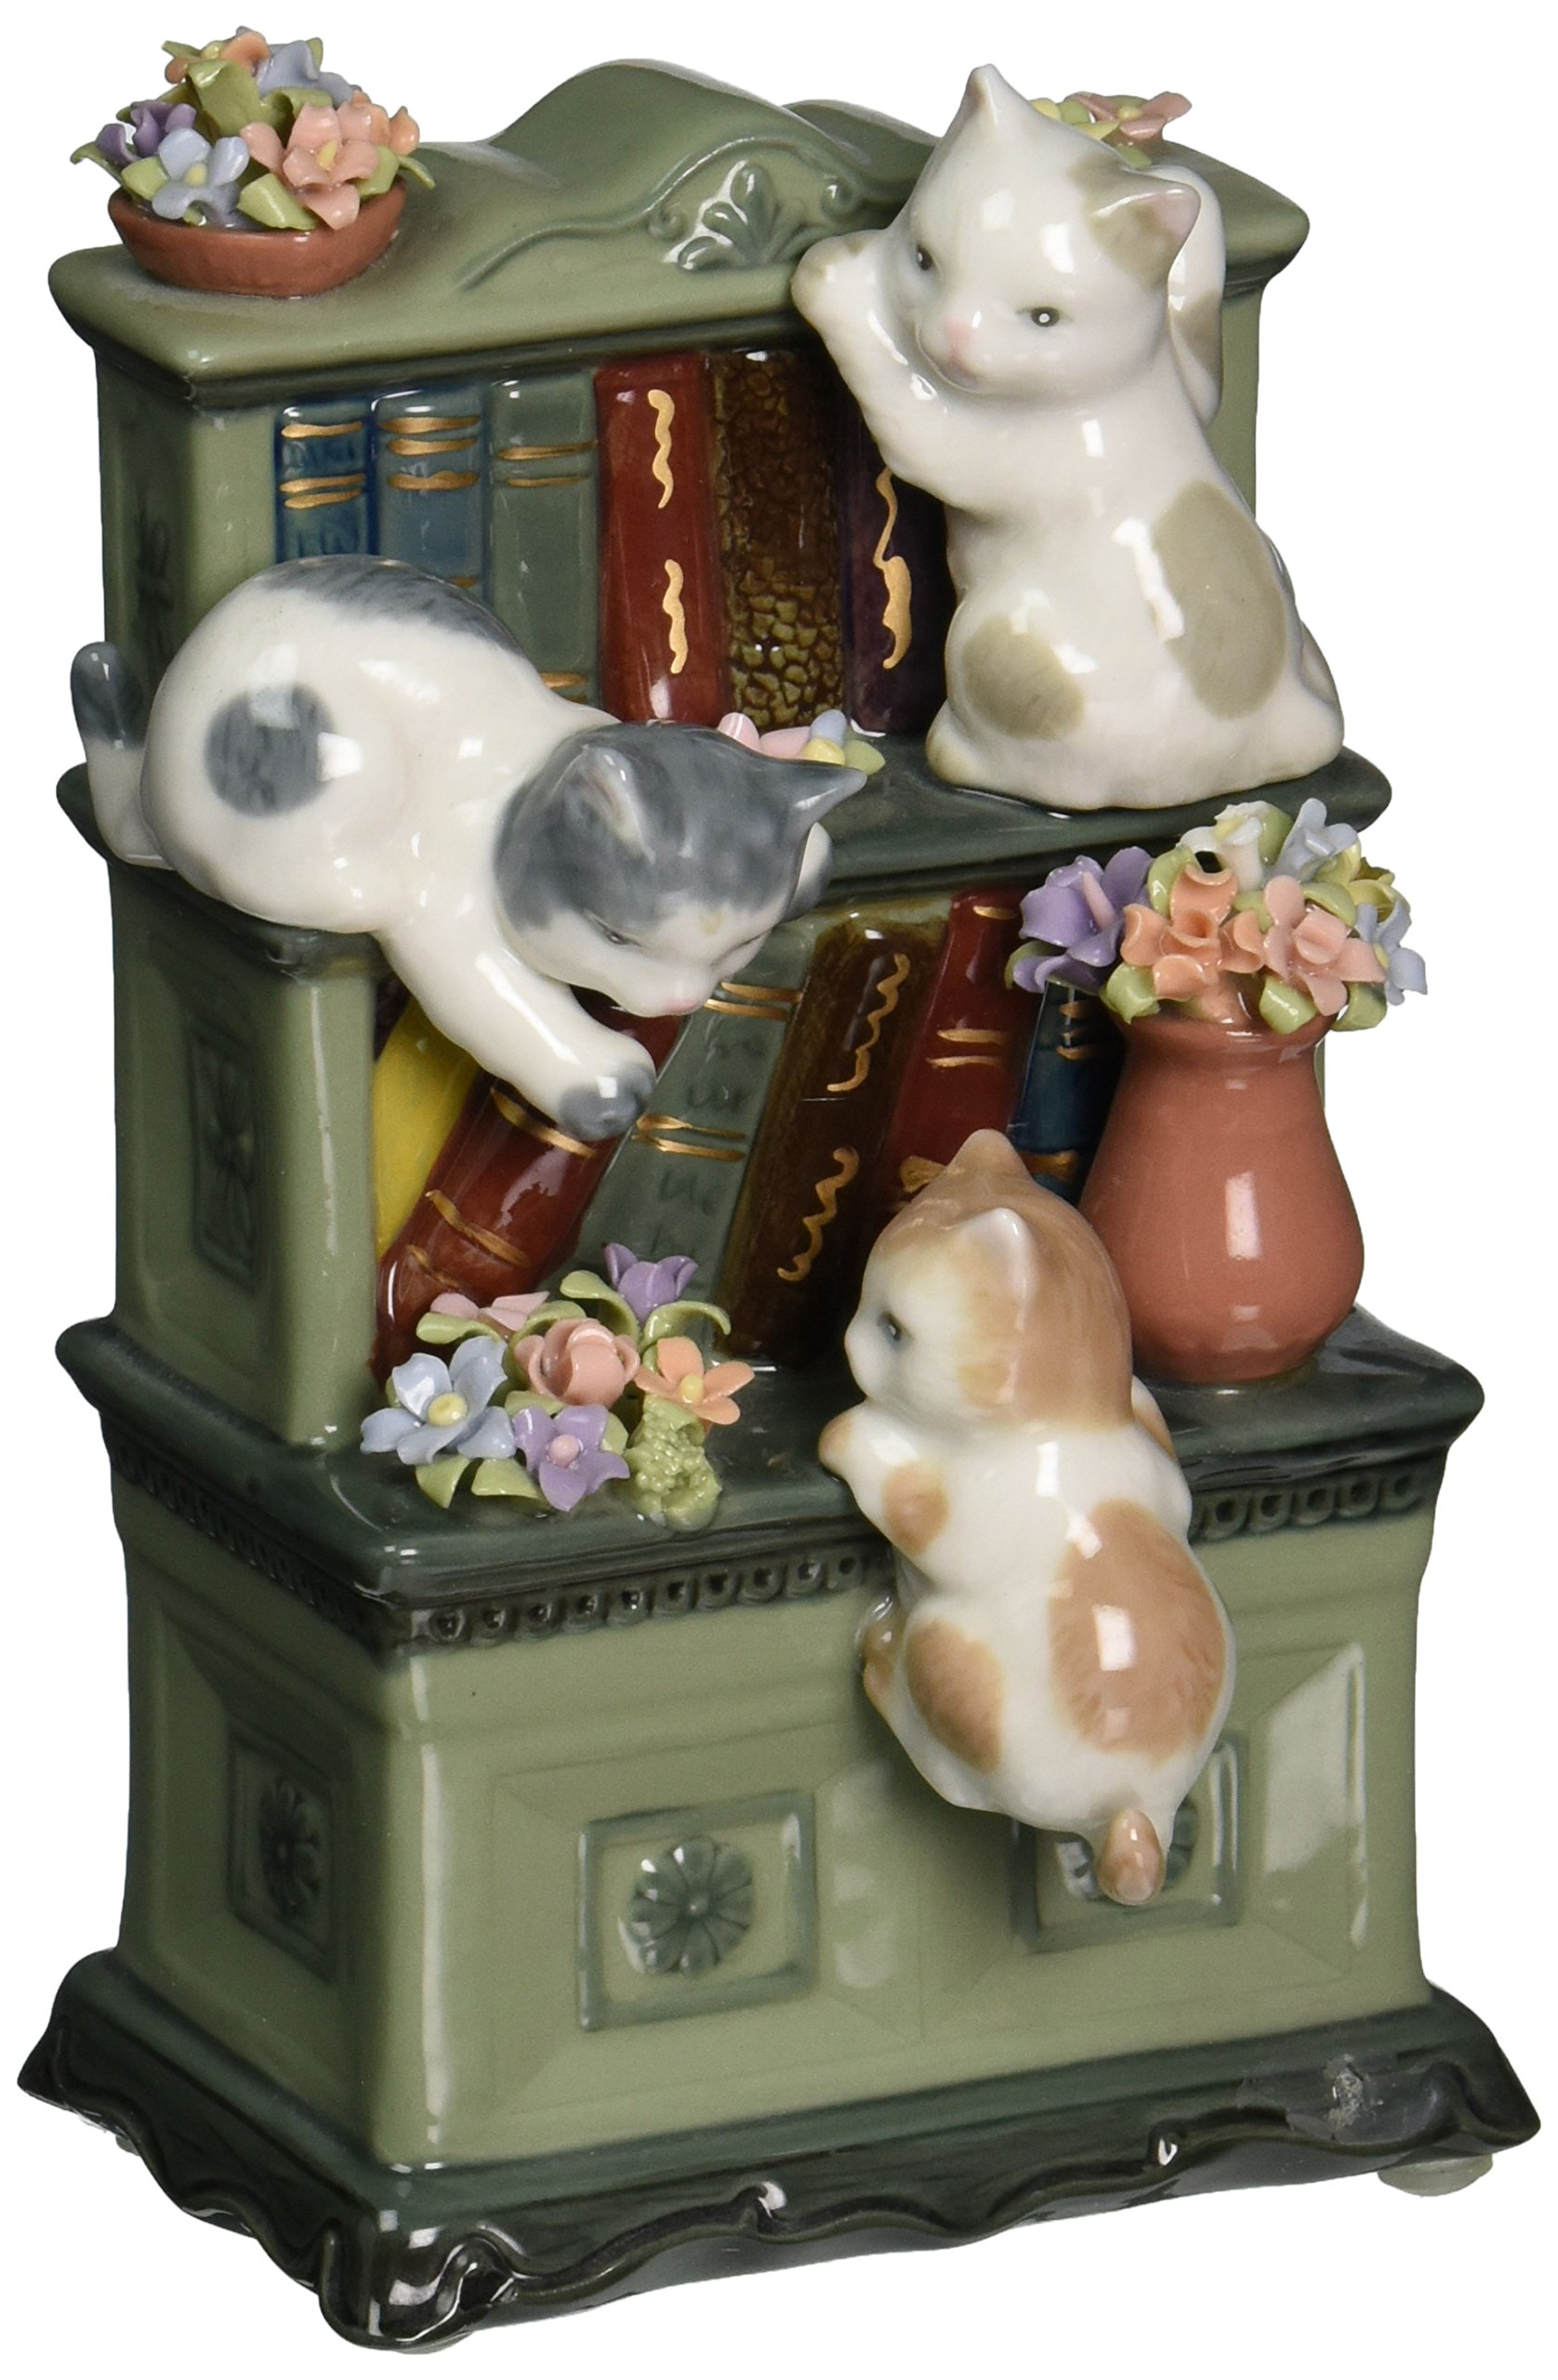 Cosmos 80095 Fine Porcelain Catch Me If You Can Cat Musical Figurine, 6-Inch